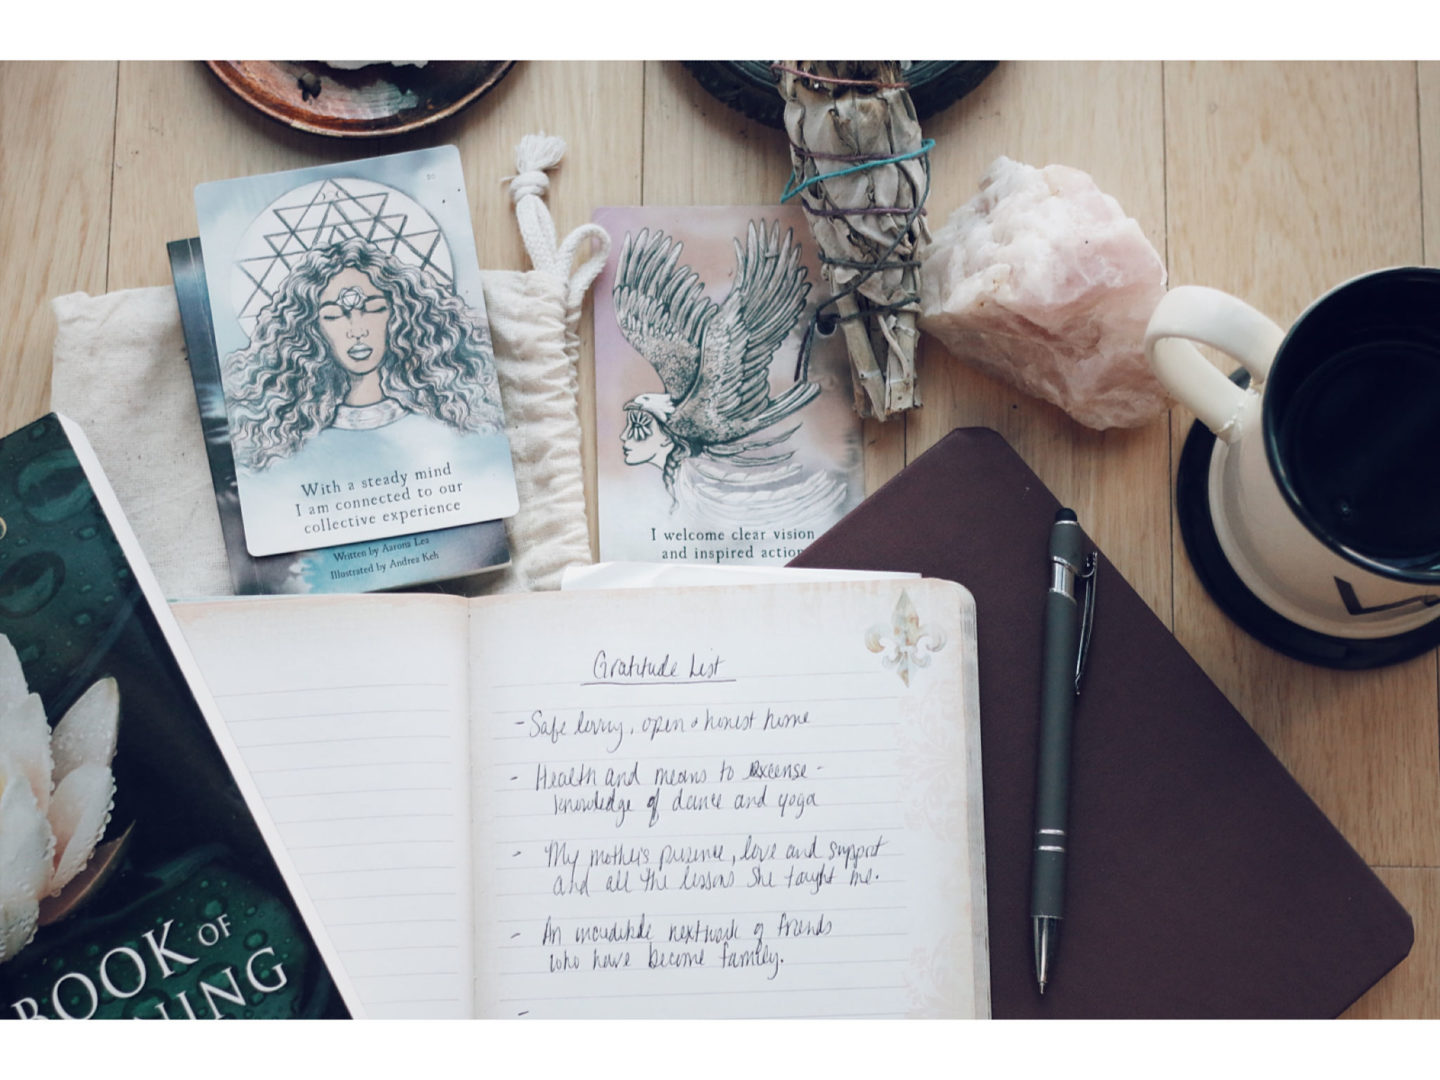 PRACTICAL TIPS FOR CREATING A SELF-CARE RITUAL